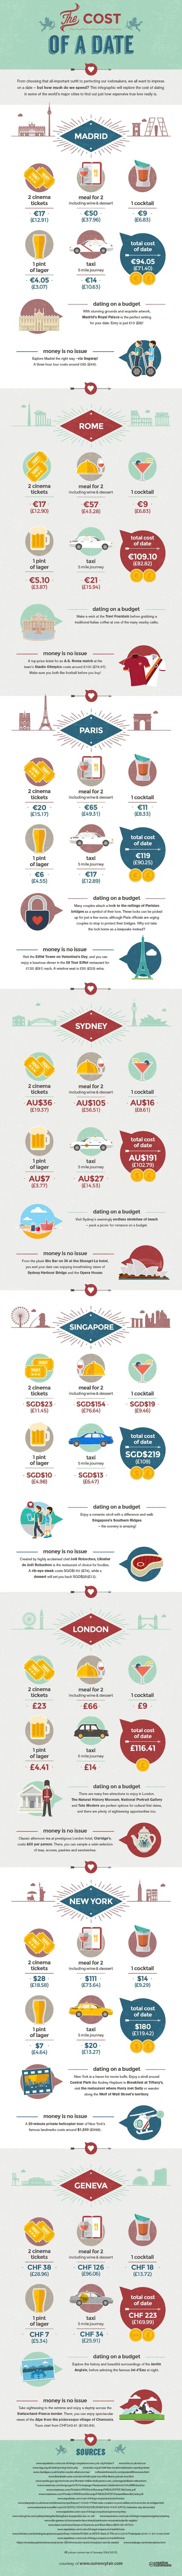 The Cost of A Date #infographic